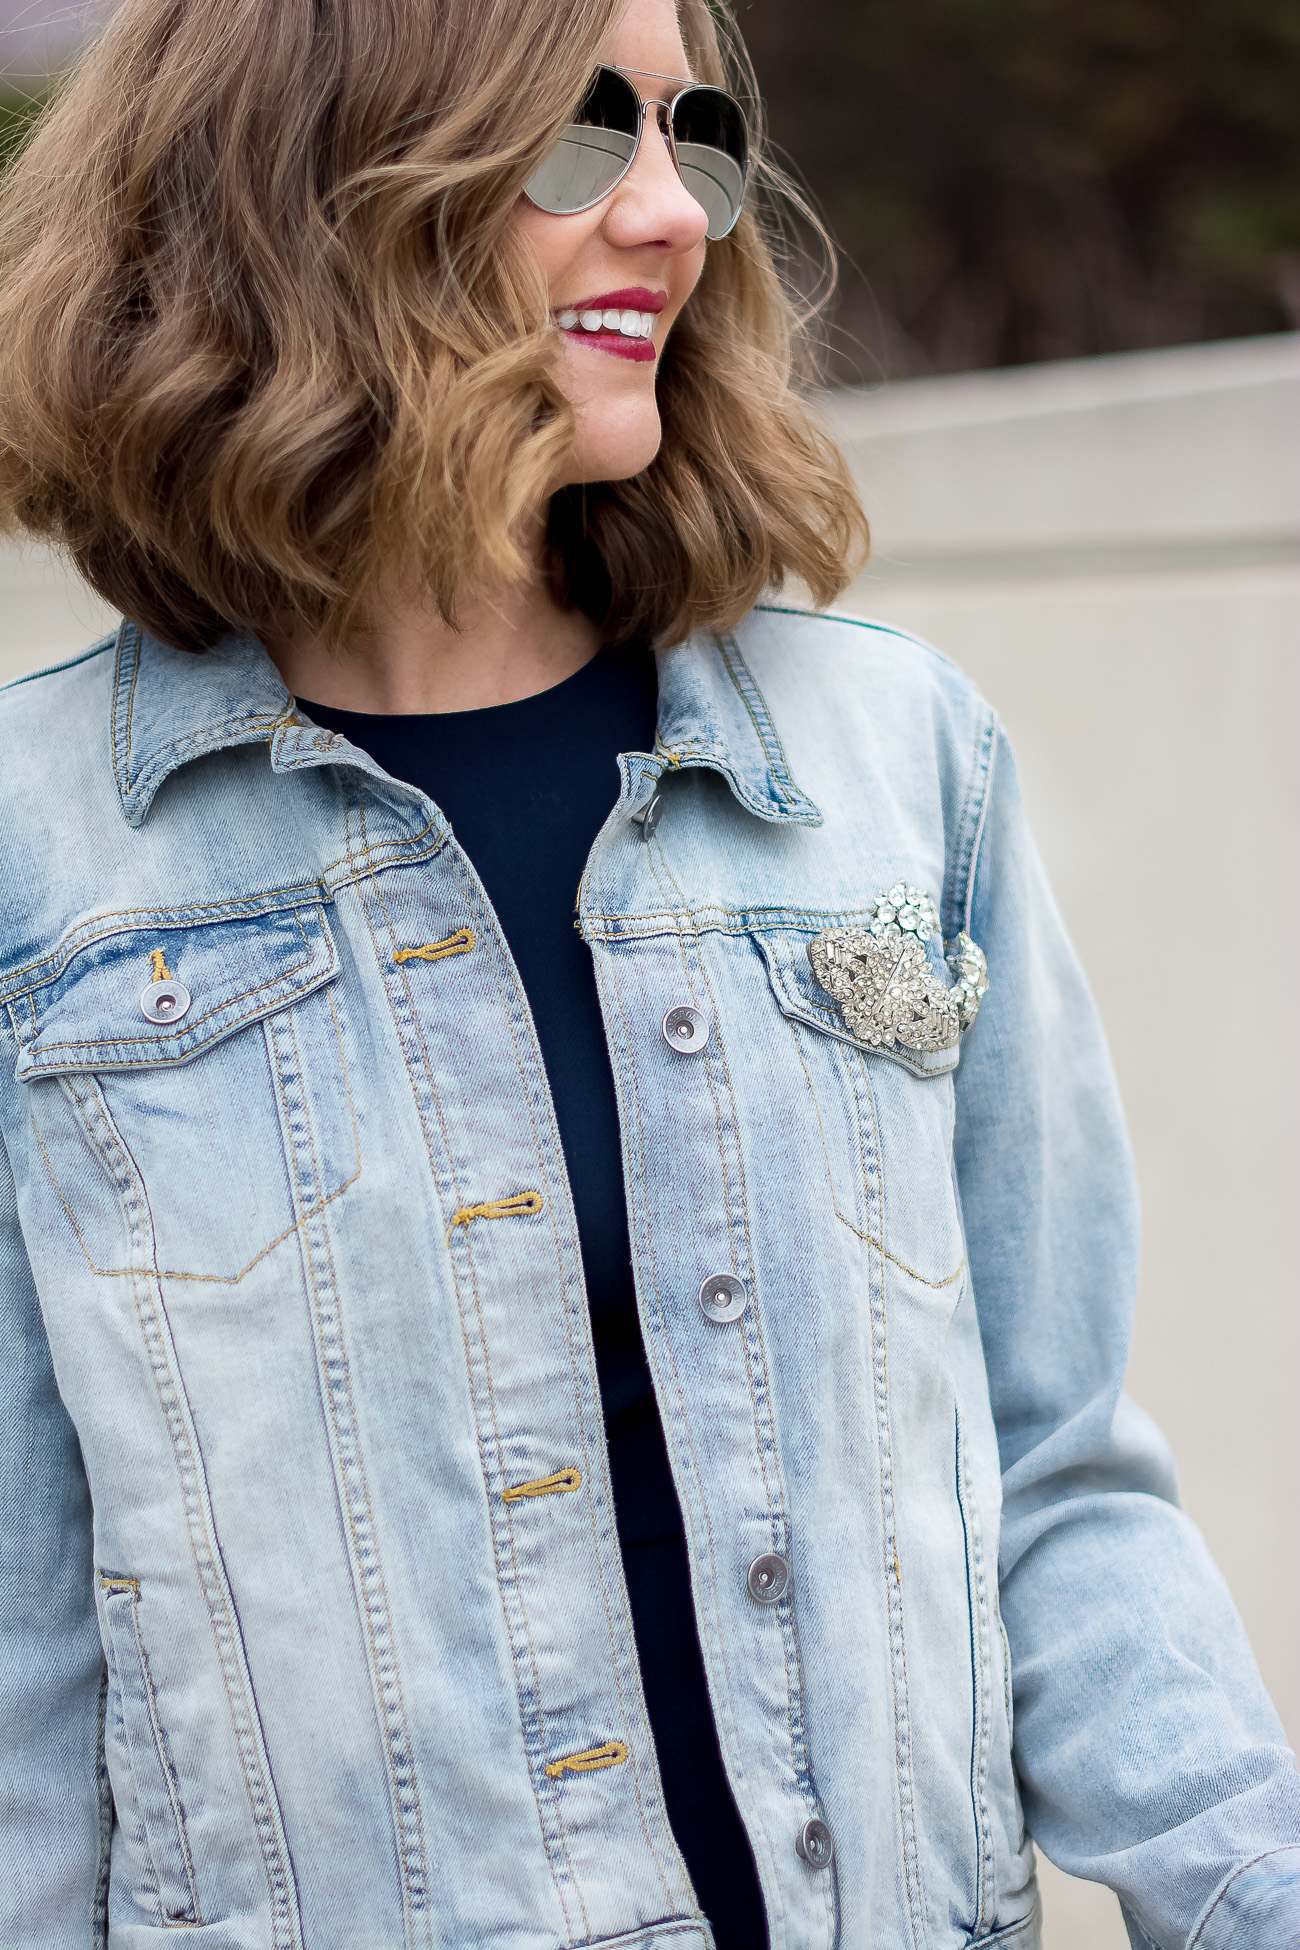 target-light-wash-denim-jacket-banana-republic-fit-and-flare-dress-vintage-rhinestone-brooches-mirrored-aviators-vintage-meets-modern-outfit